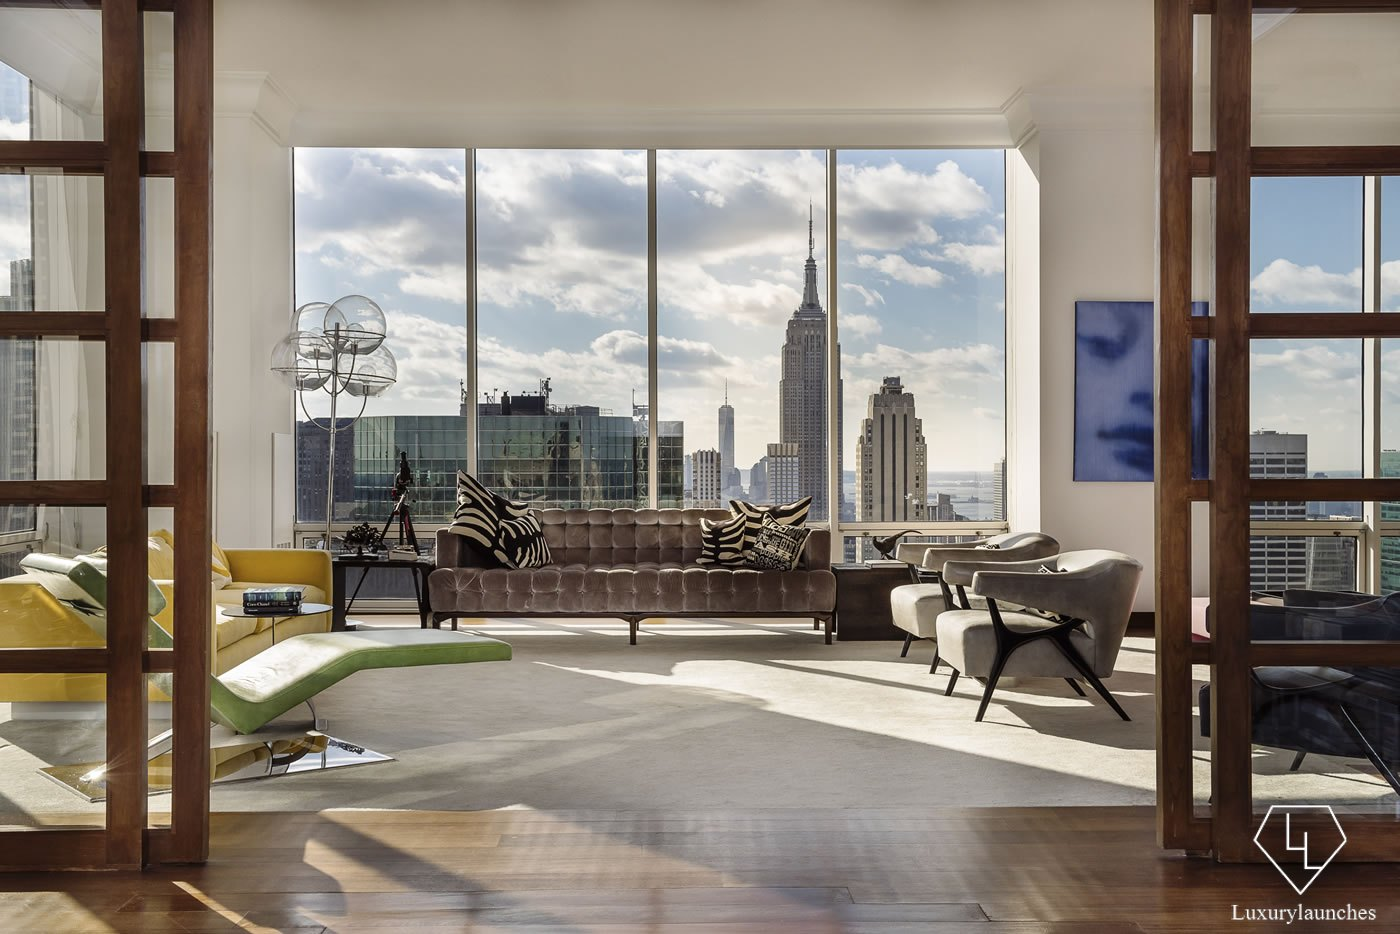 gucci 39 s 38 million penthouse in manhattan is up for sale here is an inside look. Black Bedroom Furniture Sets. Home Design Ideas